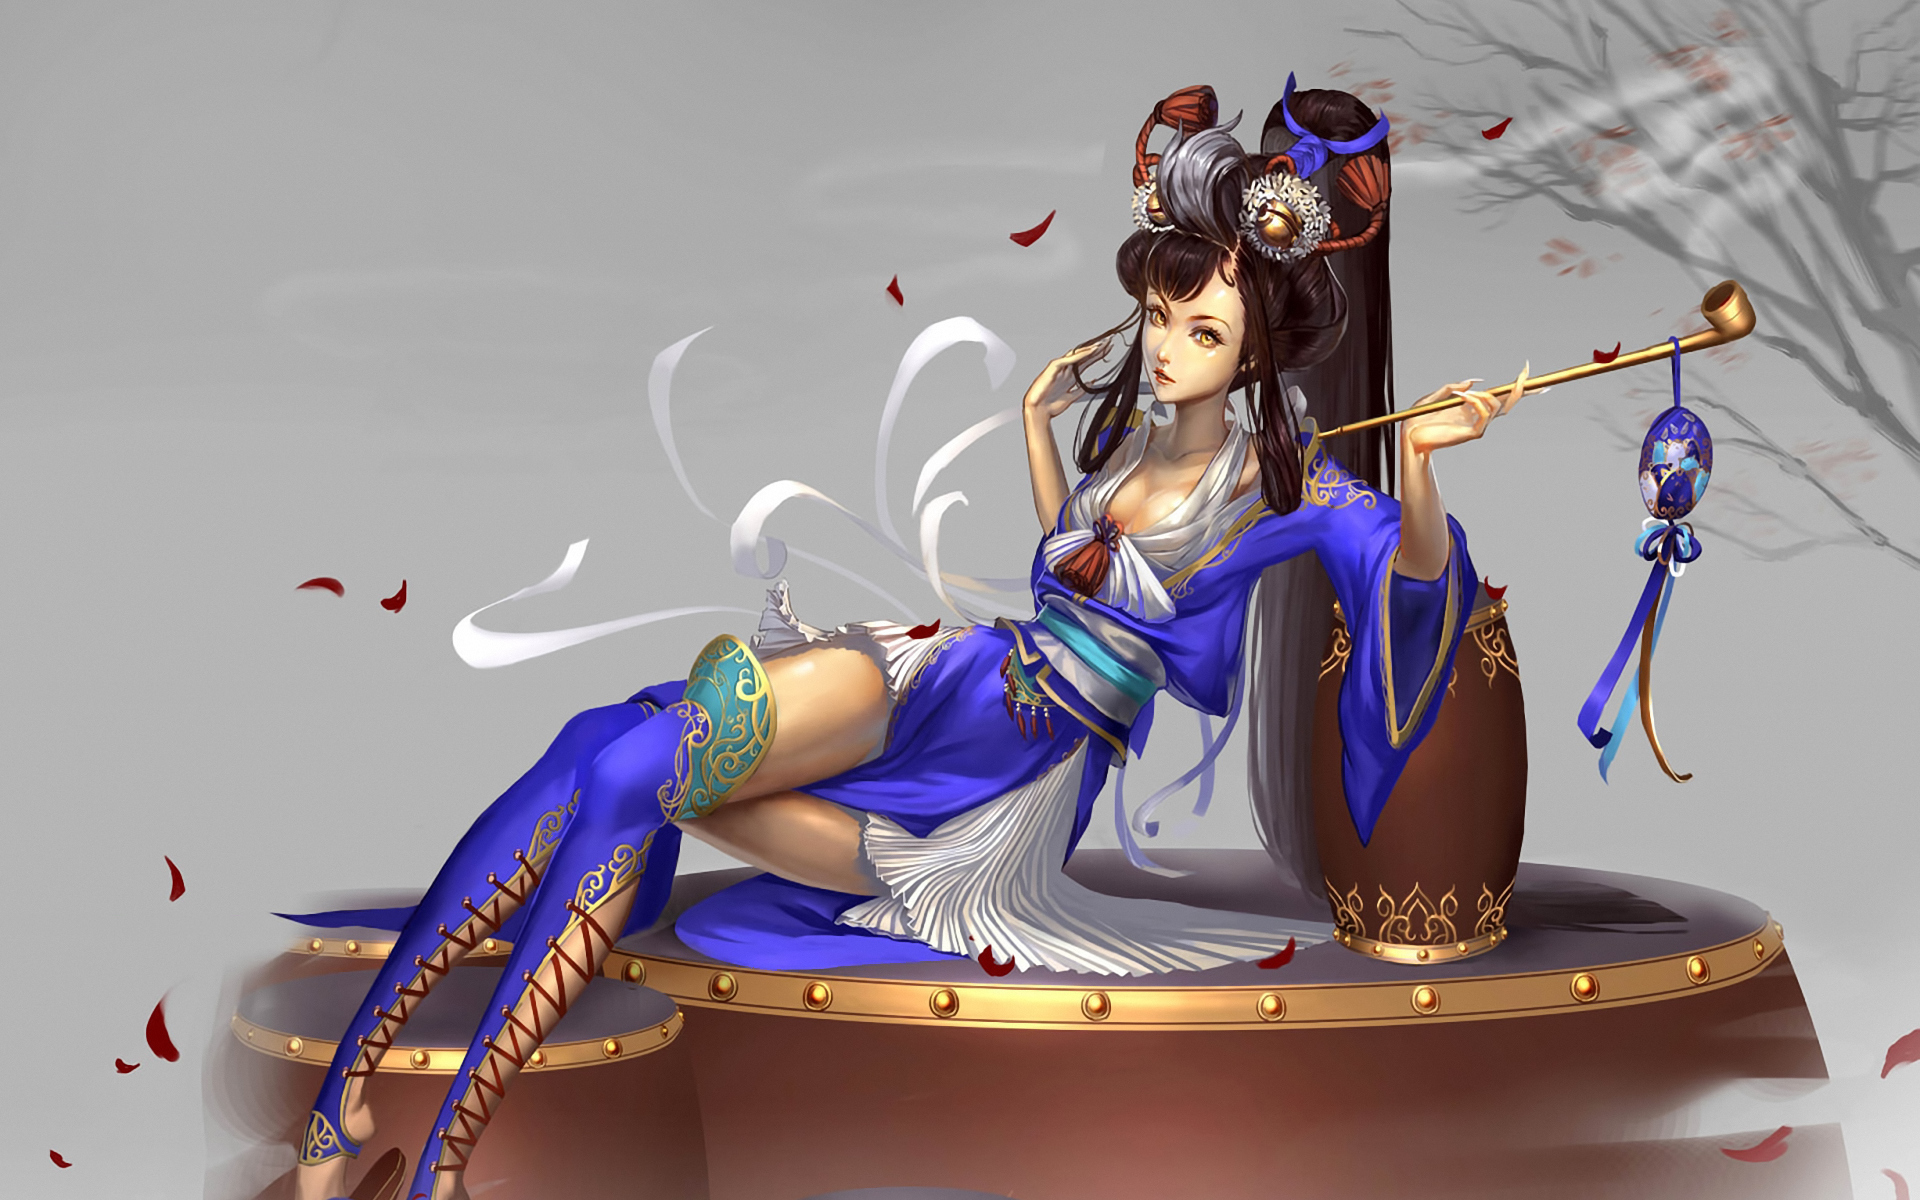 Cool Video Game Wallpapers Hd Oriental Full Hd Wallpaper And Background Image